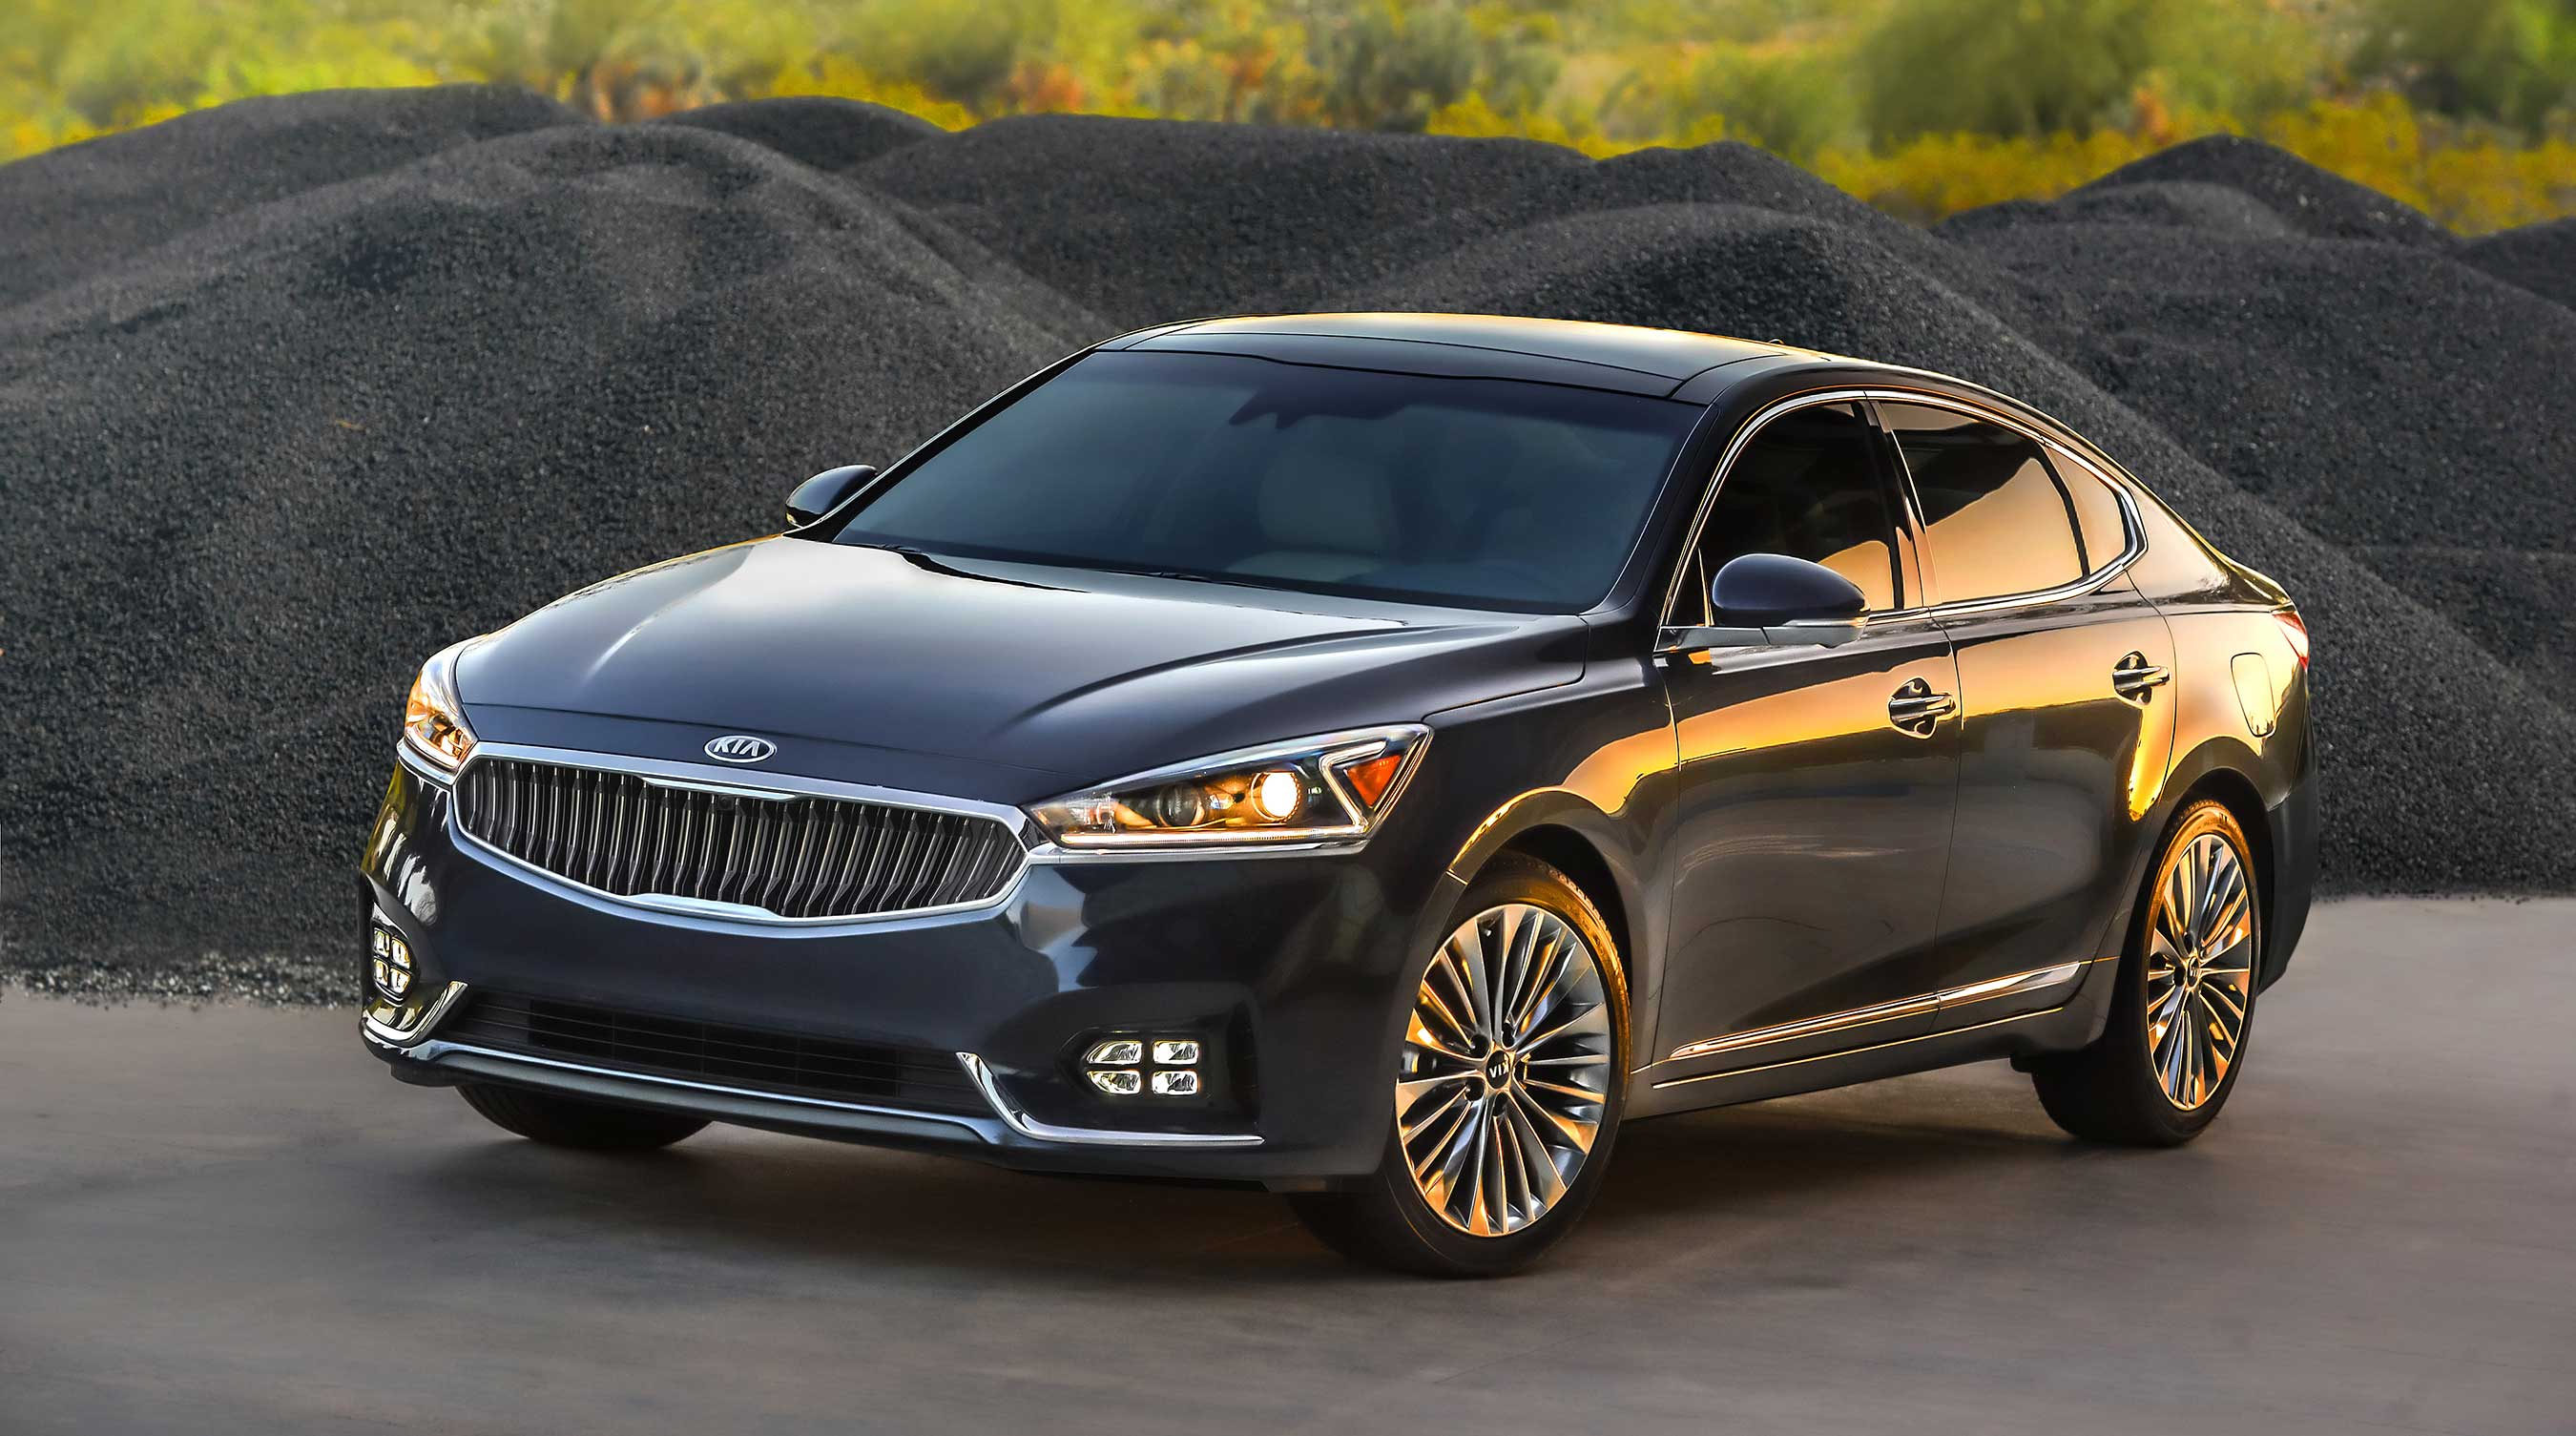 Kia Cadenza achieves the lowest average number of problems among all models ranked in the J.D. Power Initial Quality Study (IQS)